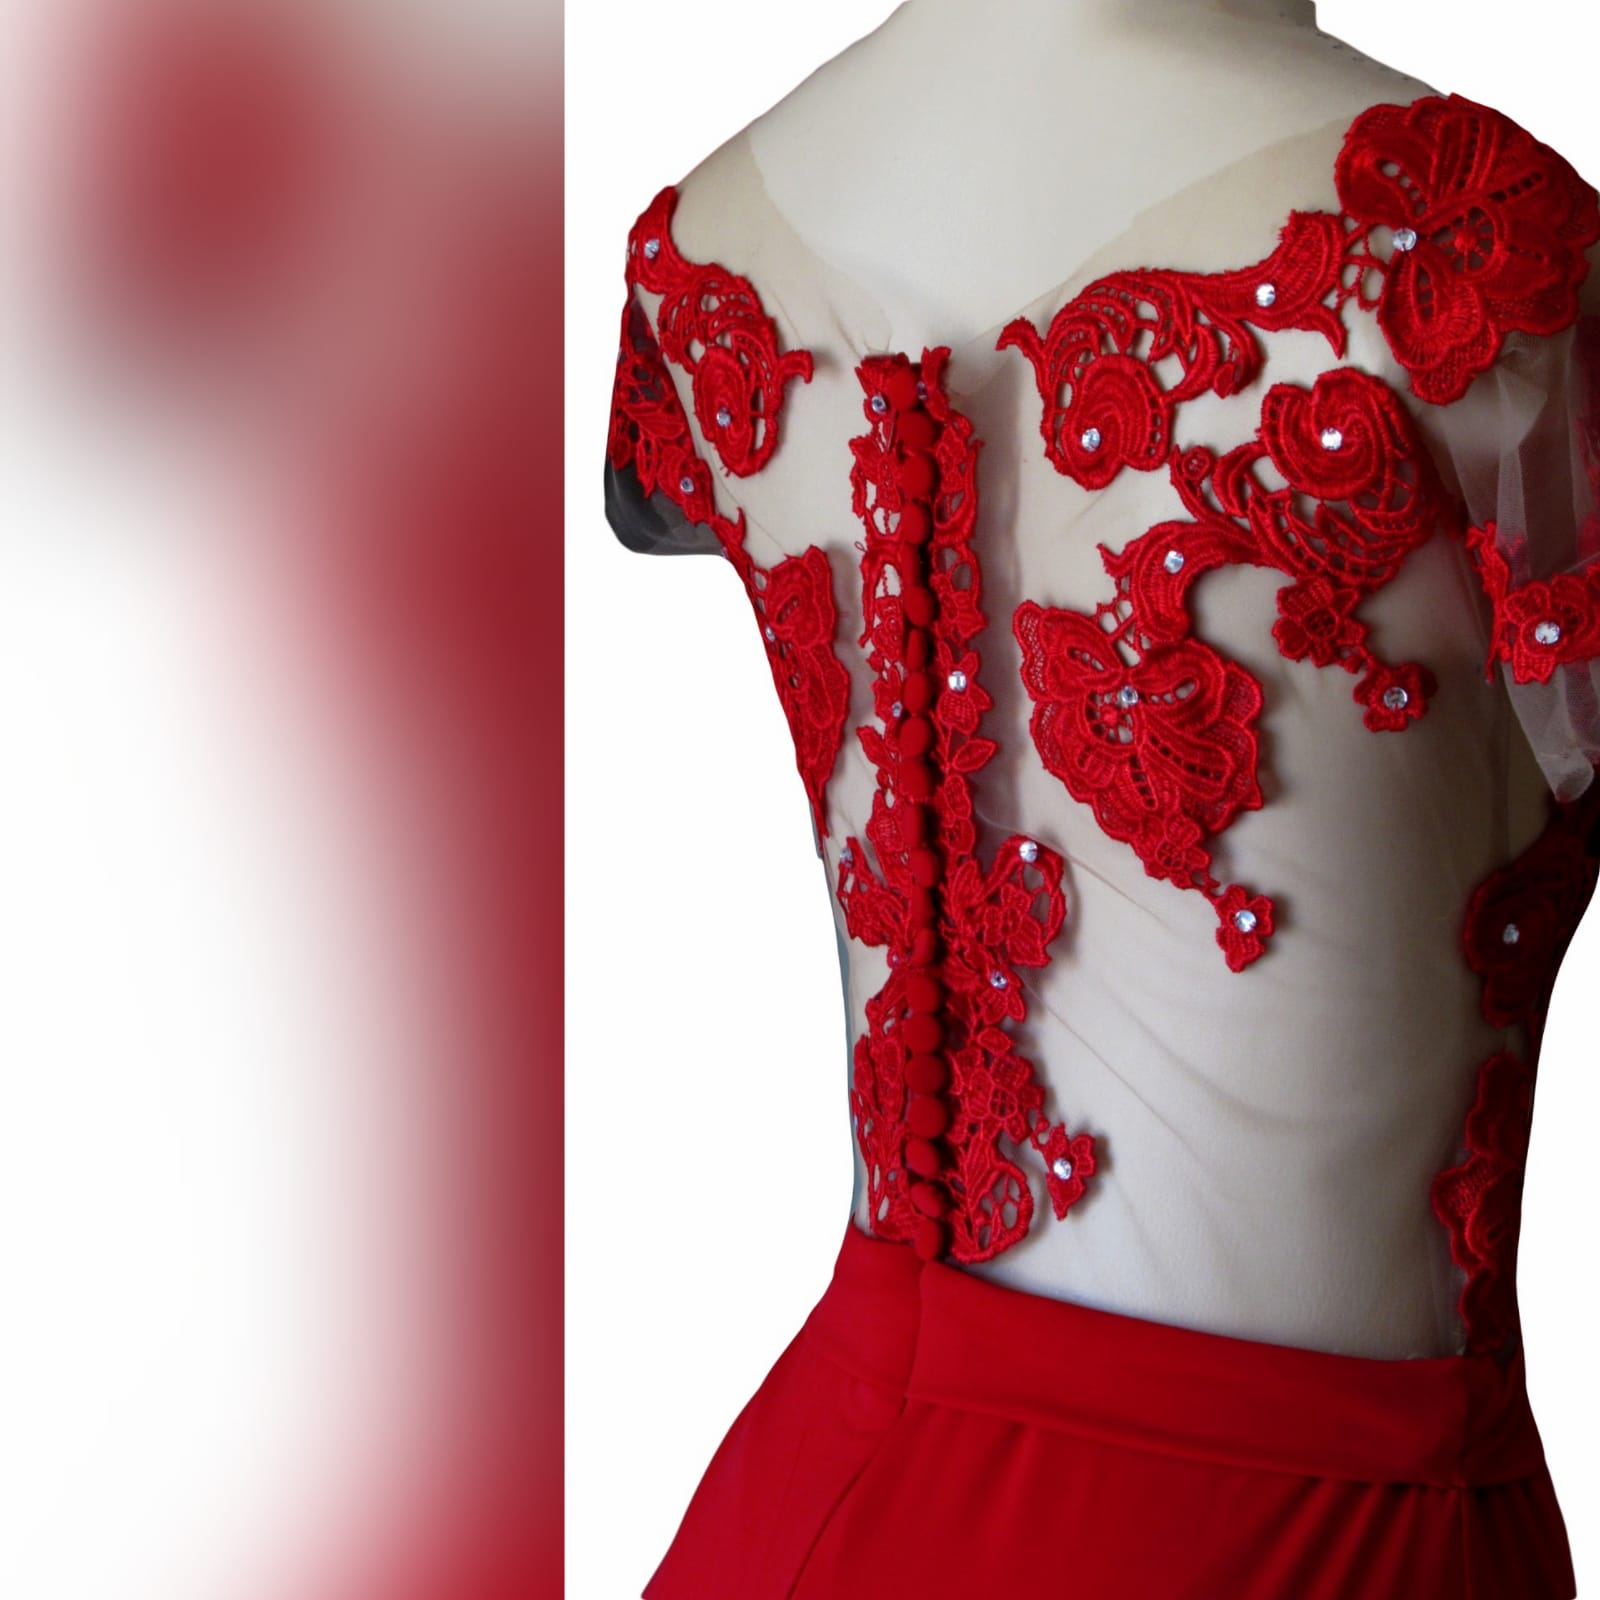 Red flowy lace bodice prom dress 8 red flowy lace bodice prom dress. With an illusion lace bodice detailed with silver beads and buttons. Evening dress with a slit and a train.